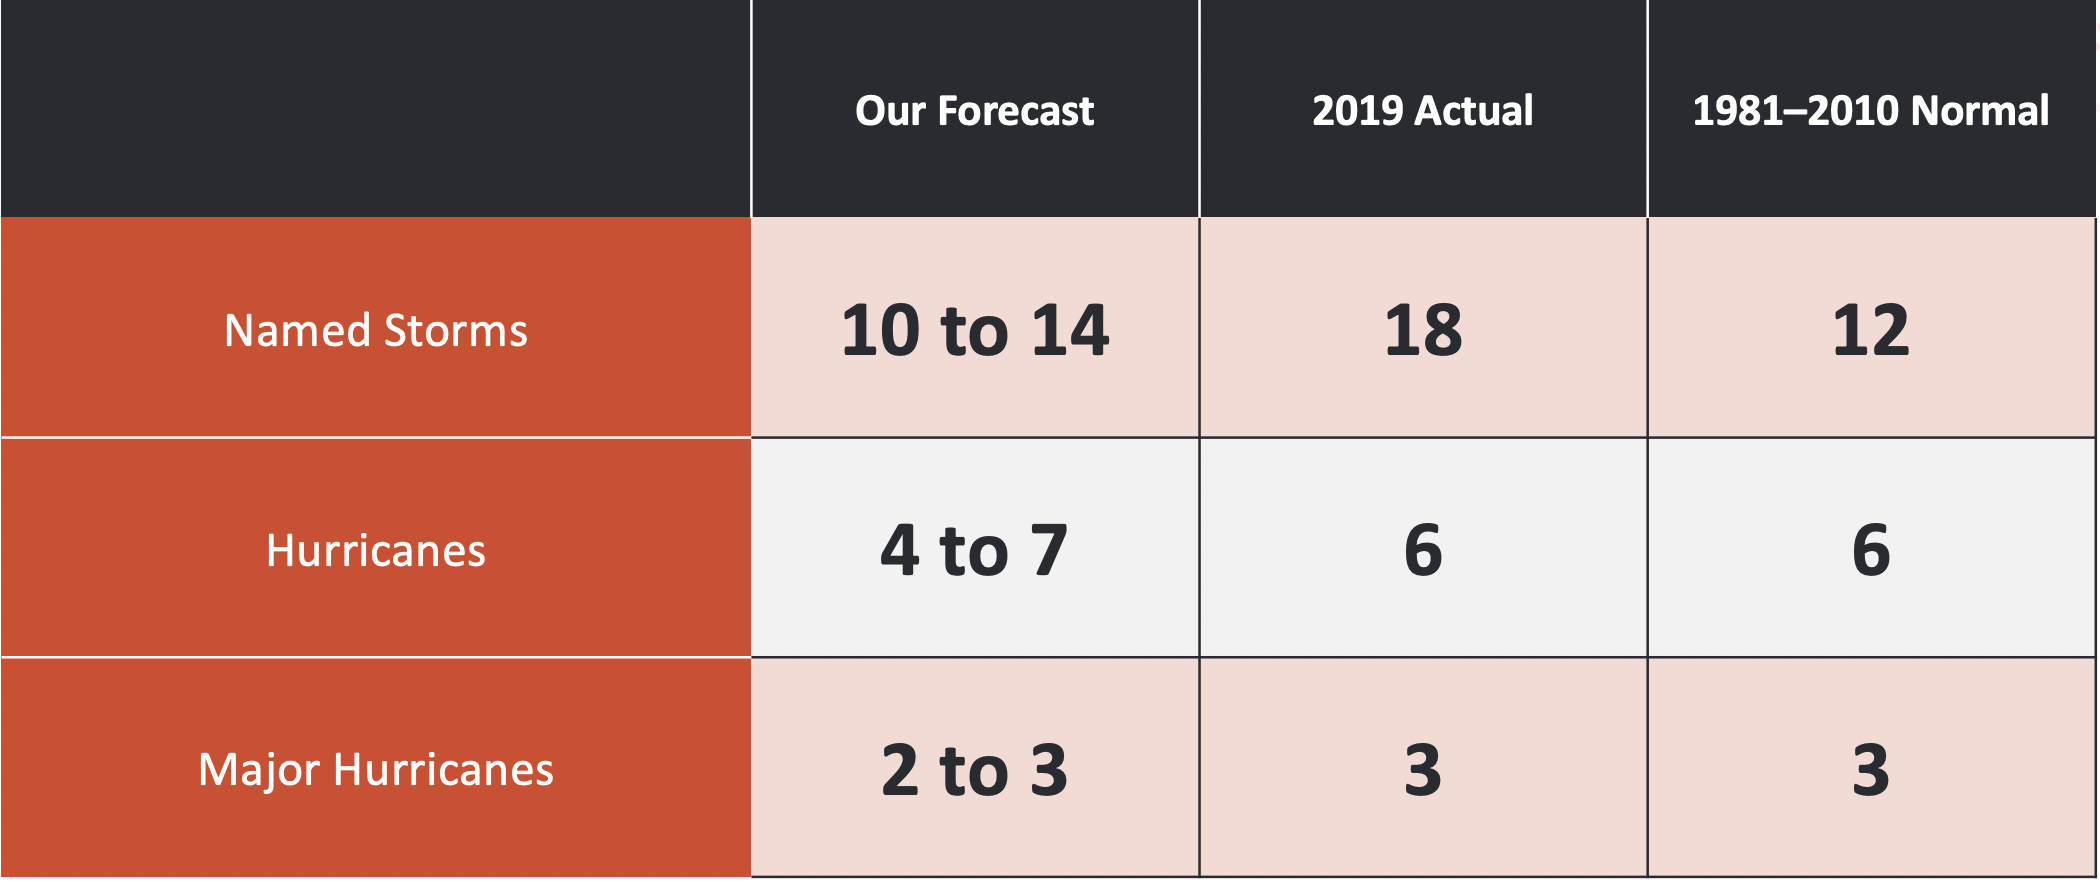 2019 Hurricane Season by the numbers. Named storms: Our forecast 10 to 14, actual 18, normal 12. Hurricanes: Our forecast 4 to 6, actual 6, normal 6, major hurricanes: us 2 to 3, actual 3, normal 3